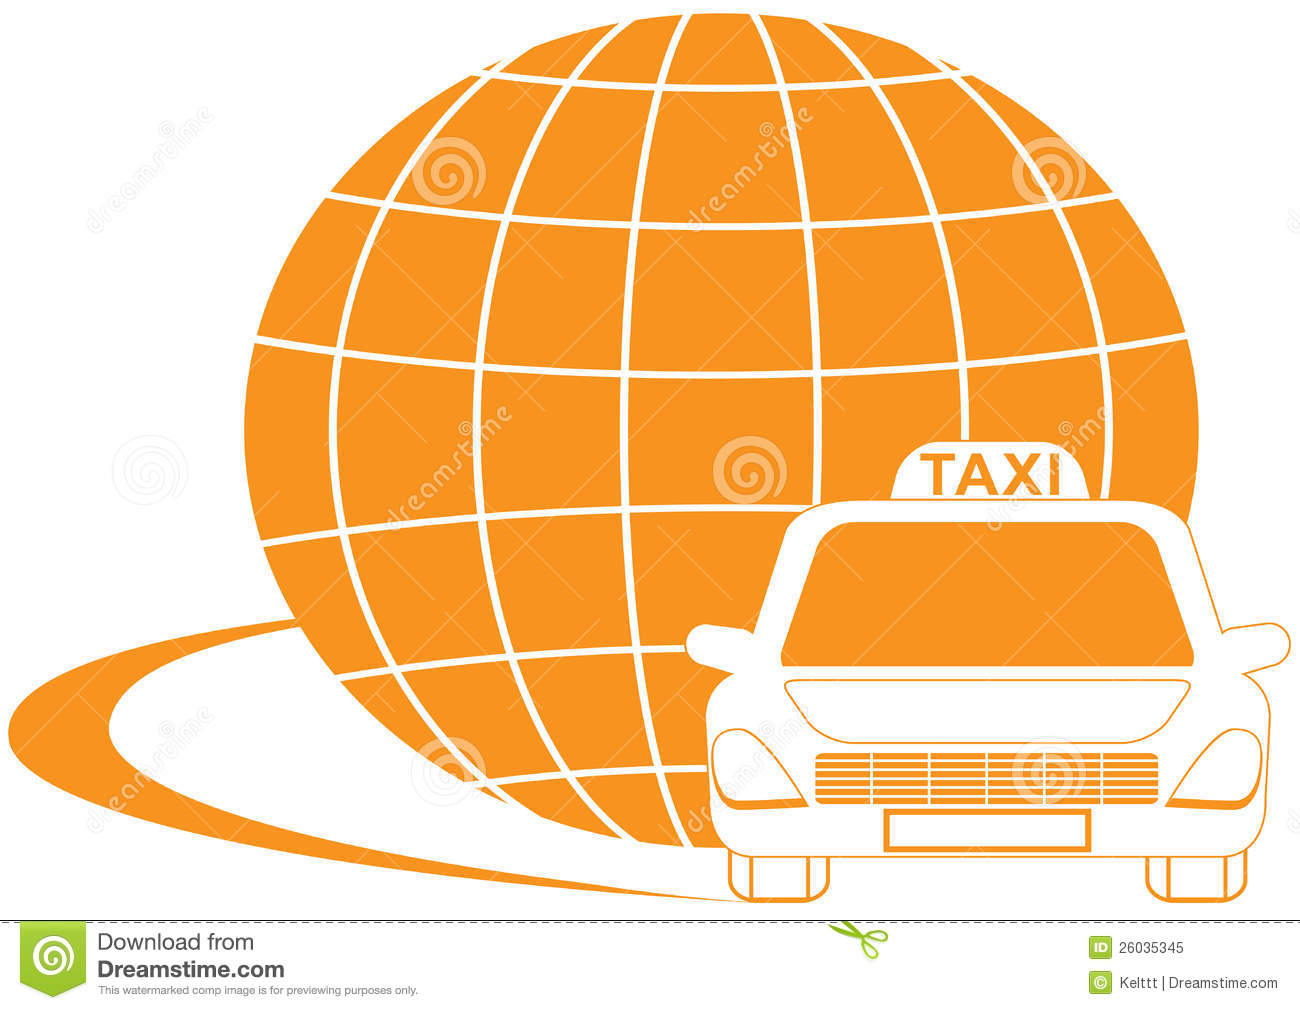 Taxi symbol with road, cab and planet silhouette